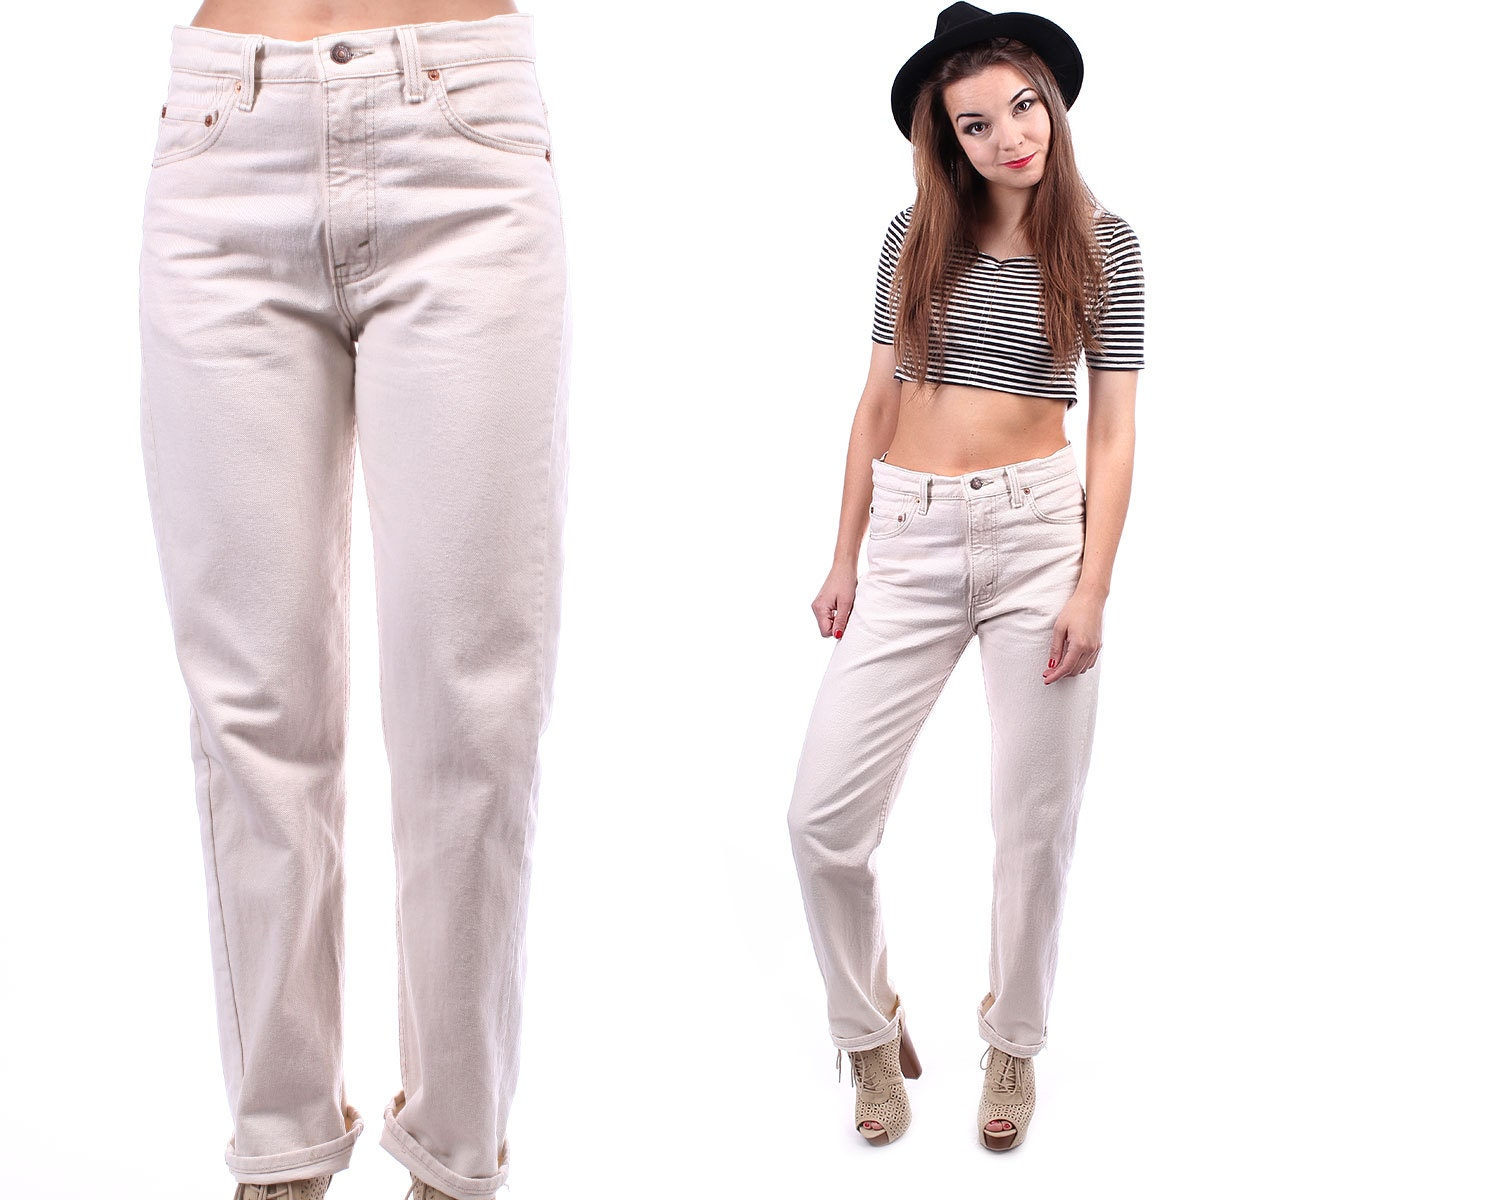 Hipster Jeans For Women